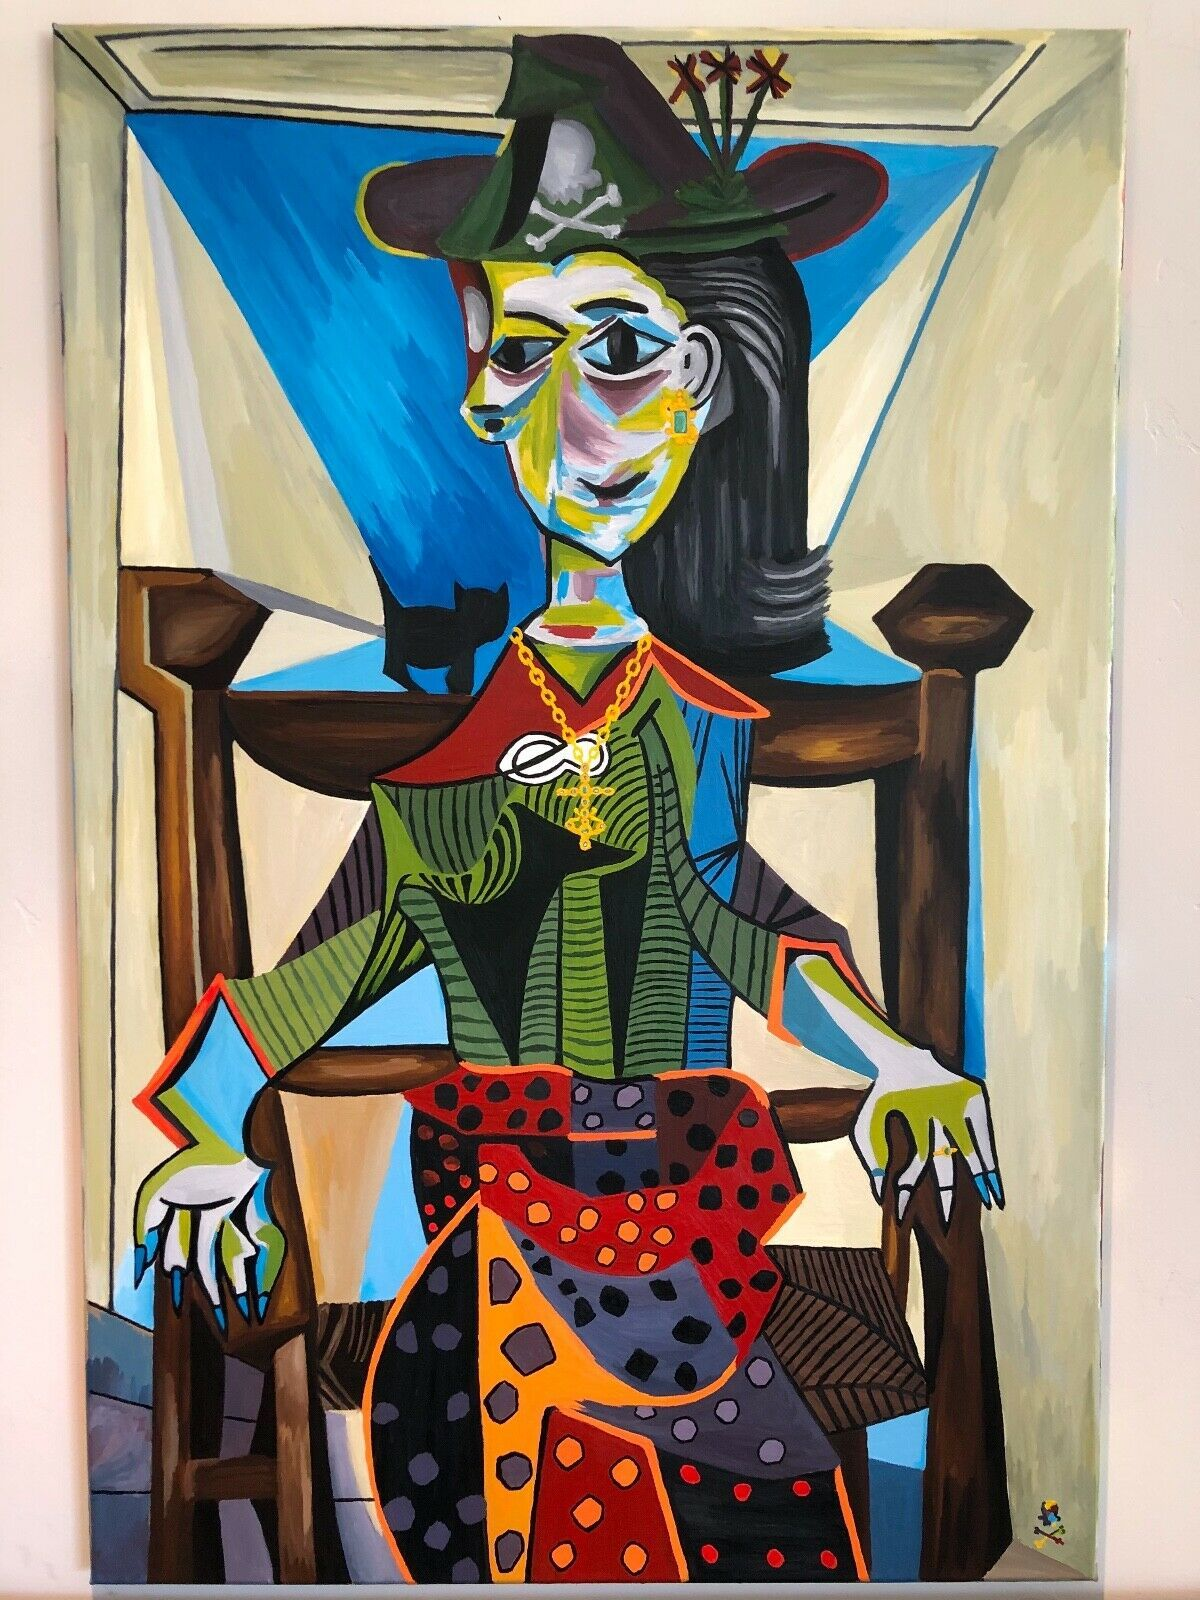 Primary image for Treasure Paintings JR Bissell: A Pirate's Rendition Pablo Picasso Dora Maar Chat